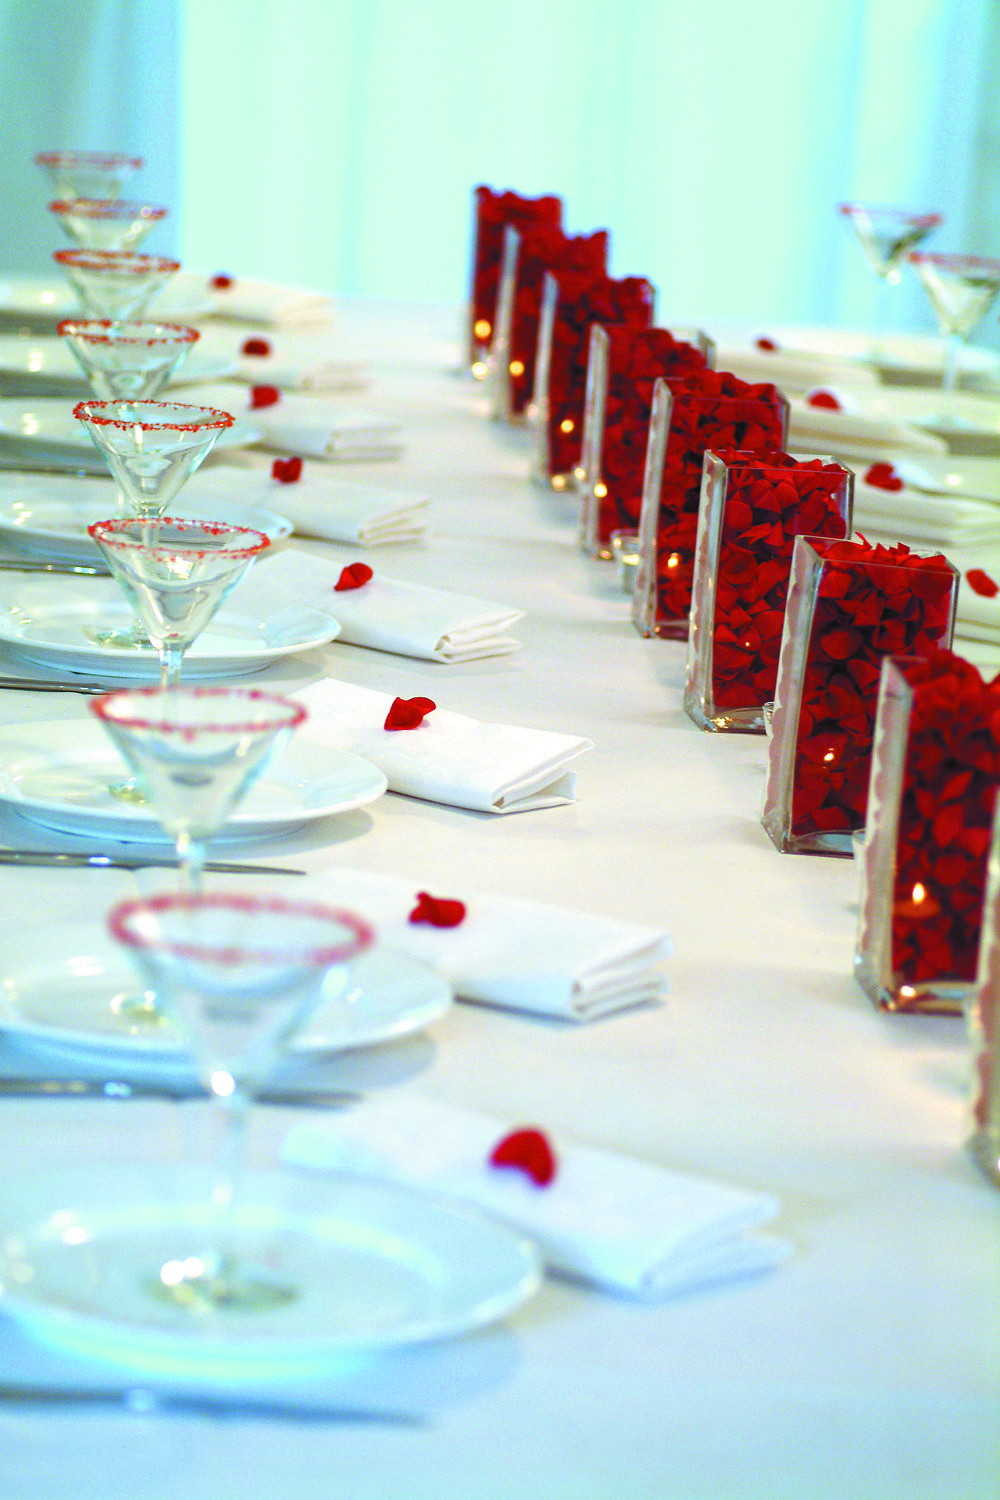 Wedding decoration ideas red and white  RED  WHITE Romantic wedding tablescape View more images from our